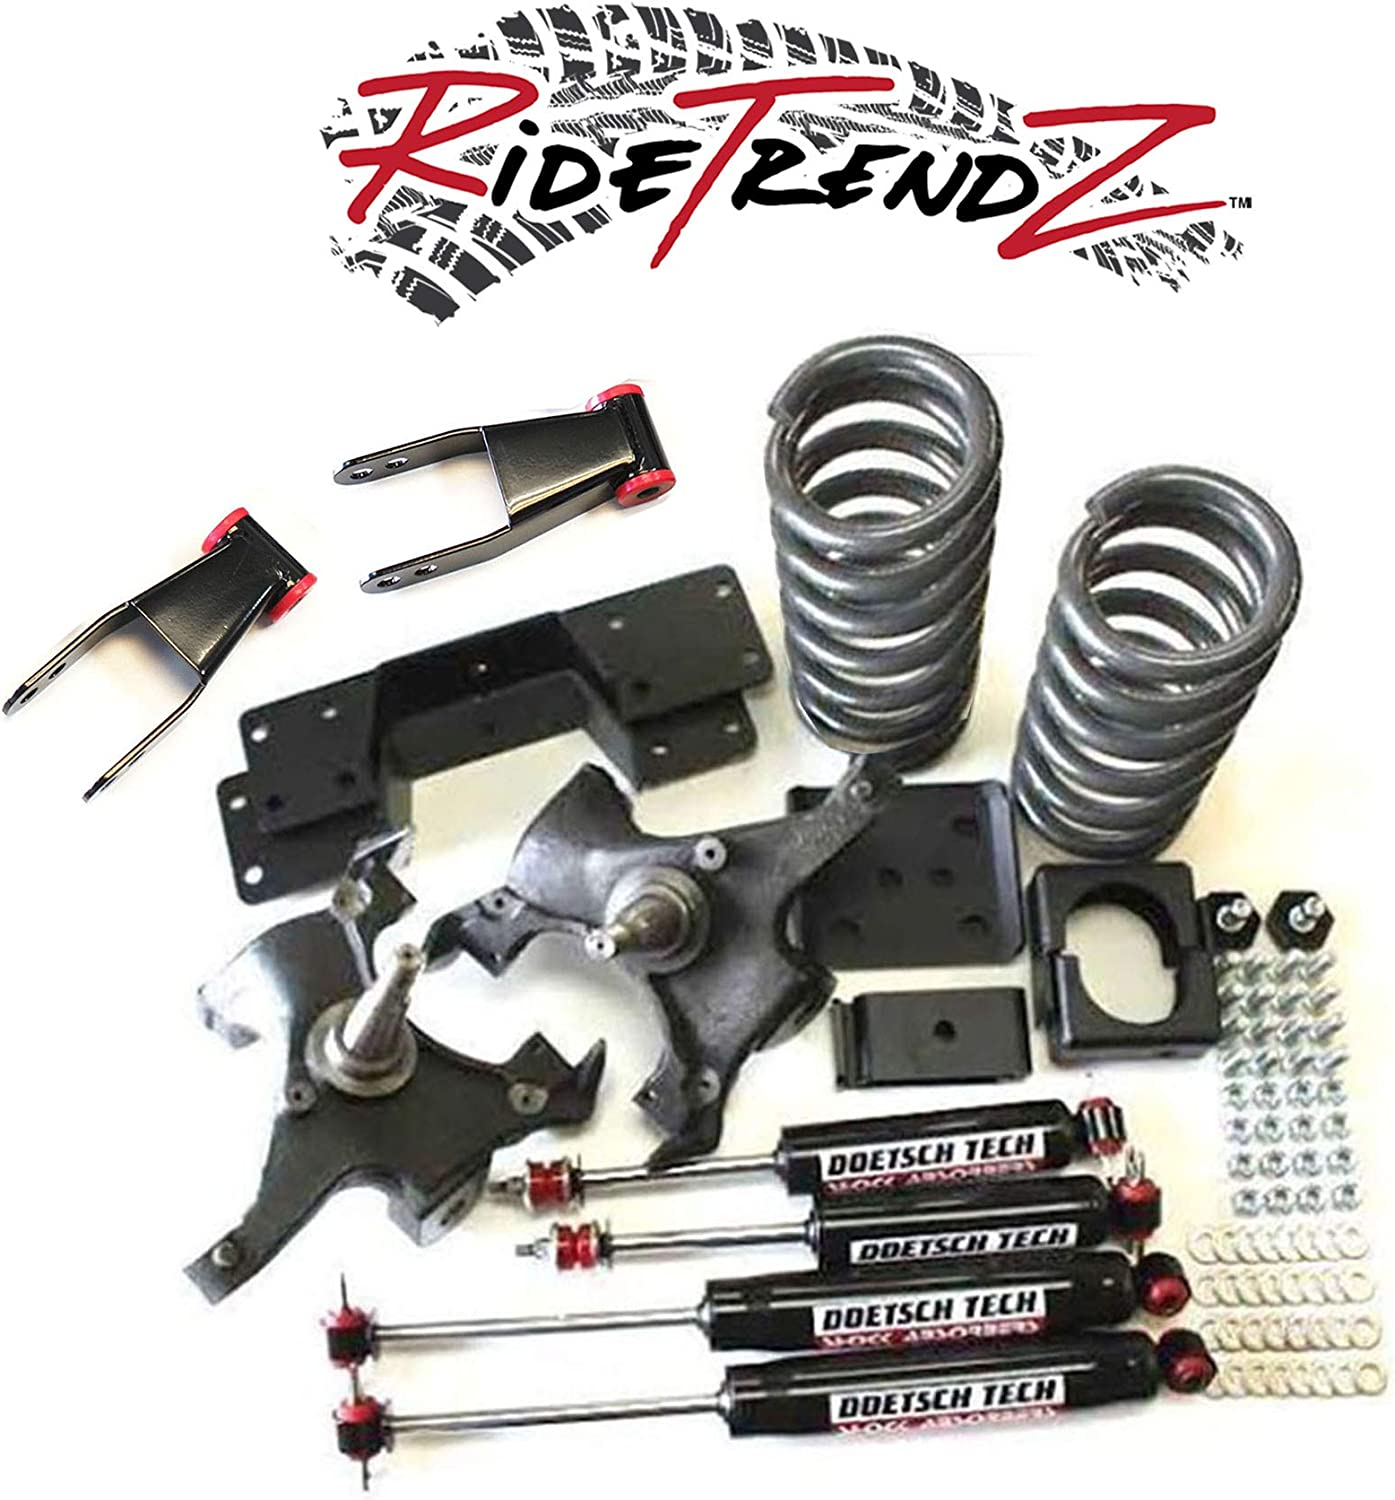 RTZ - Compatible with Chevy Chevrolet C10 73-87 Truck GMC Max 86% OFF New mail order Pickup